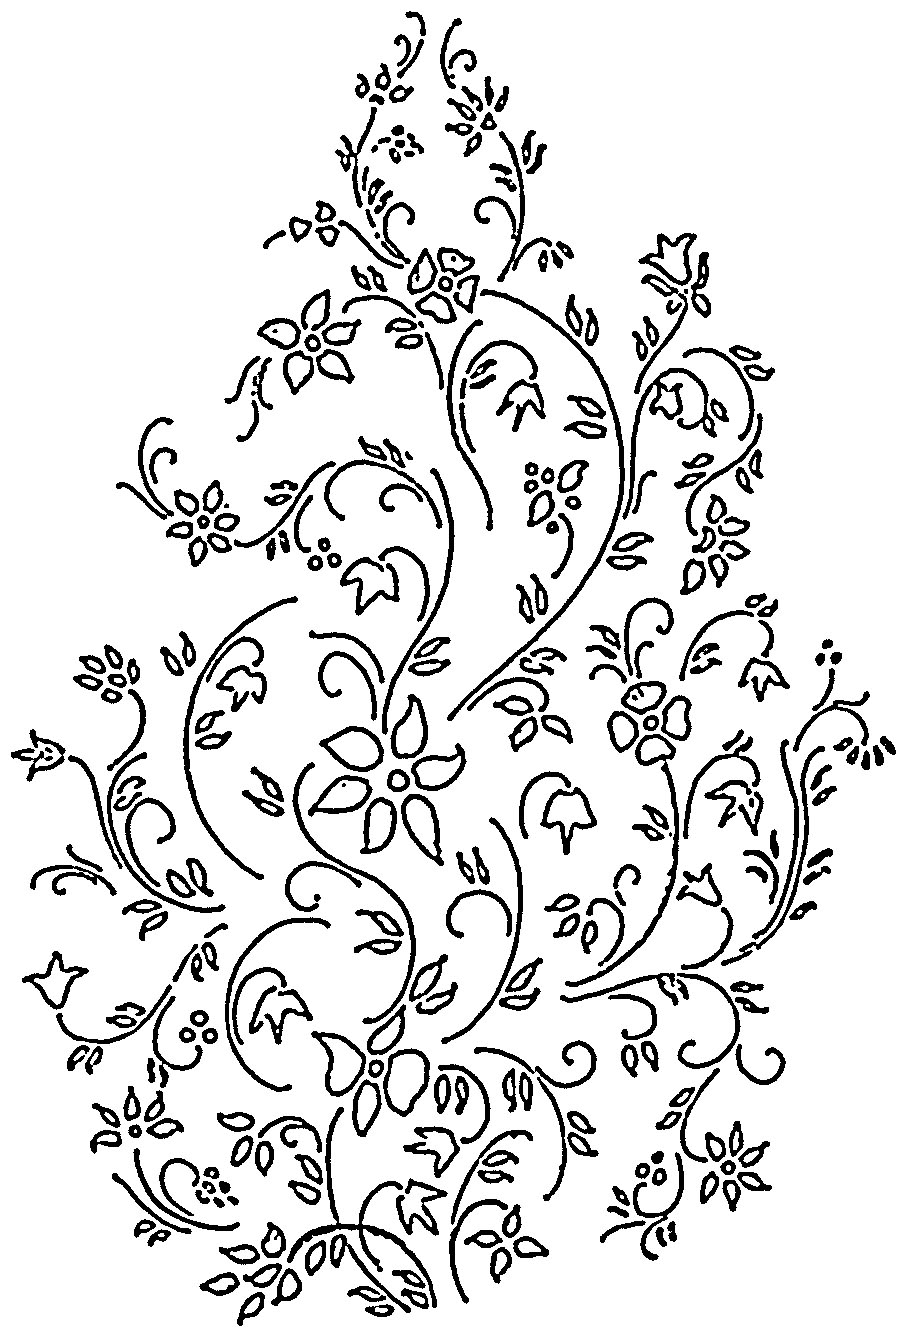 Flower Patterns and Designs